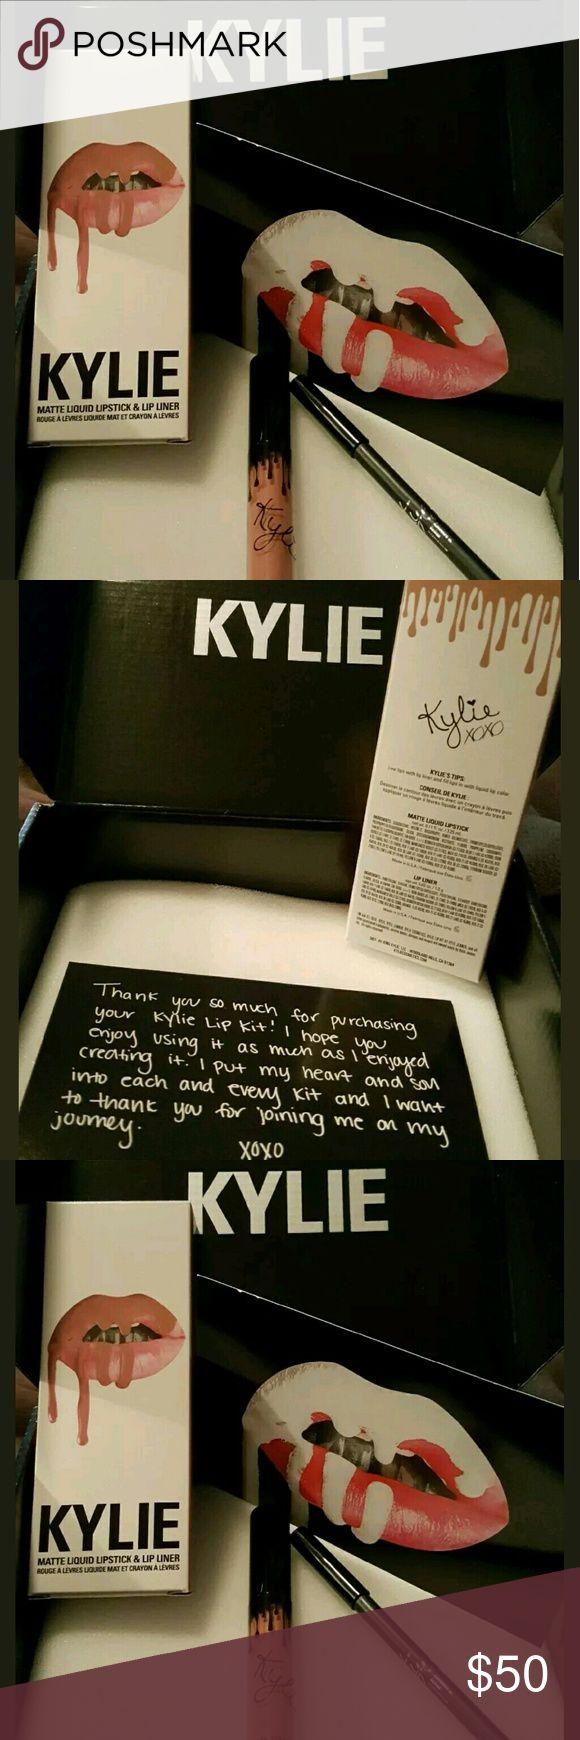 Kylie Kenner Kandy K. Always sold out. SOLD OUT AGAIN!!!!!!!!!!!!   Contains: 1 Matte Liquid Lipstick (0.11 fl oz./oz. liq / 3.25 ml) and 1 Pencil Lip Liner (net wt./ poids net  .03 oz/ 1.0g)   The #KylieLipKit is your secret weapon to create the perfect 'Kylie Lip.' Each Lip Kit comes with a Matte Liquid Lipstick and matching Lip Liner. Kandy K  This ultra-long wearing lip liner has a creamy texture that glides across the lips for a very easy and comfortable application. The Lip Liner…